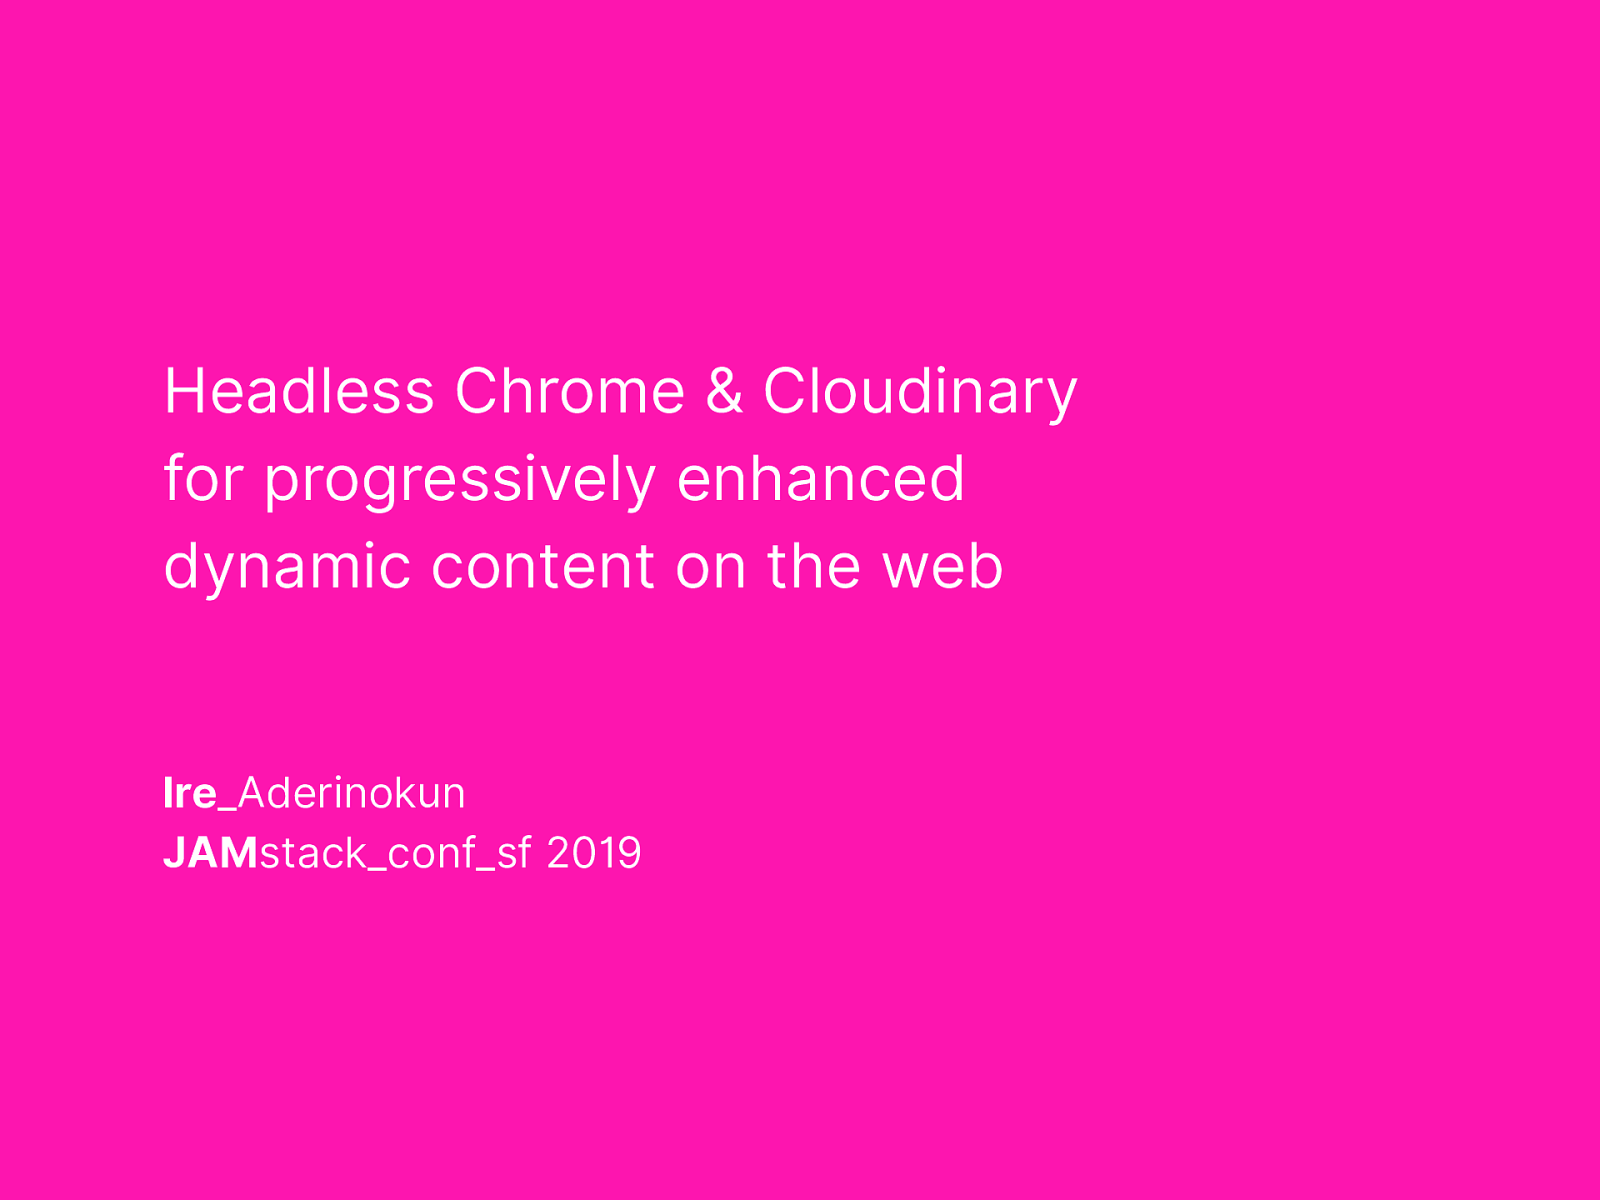 Headless Chrome & Cloudinary for progressively enhanced dynamic content